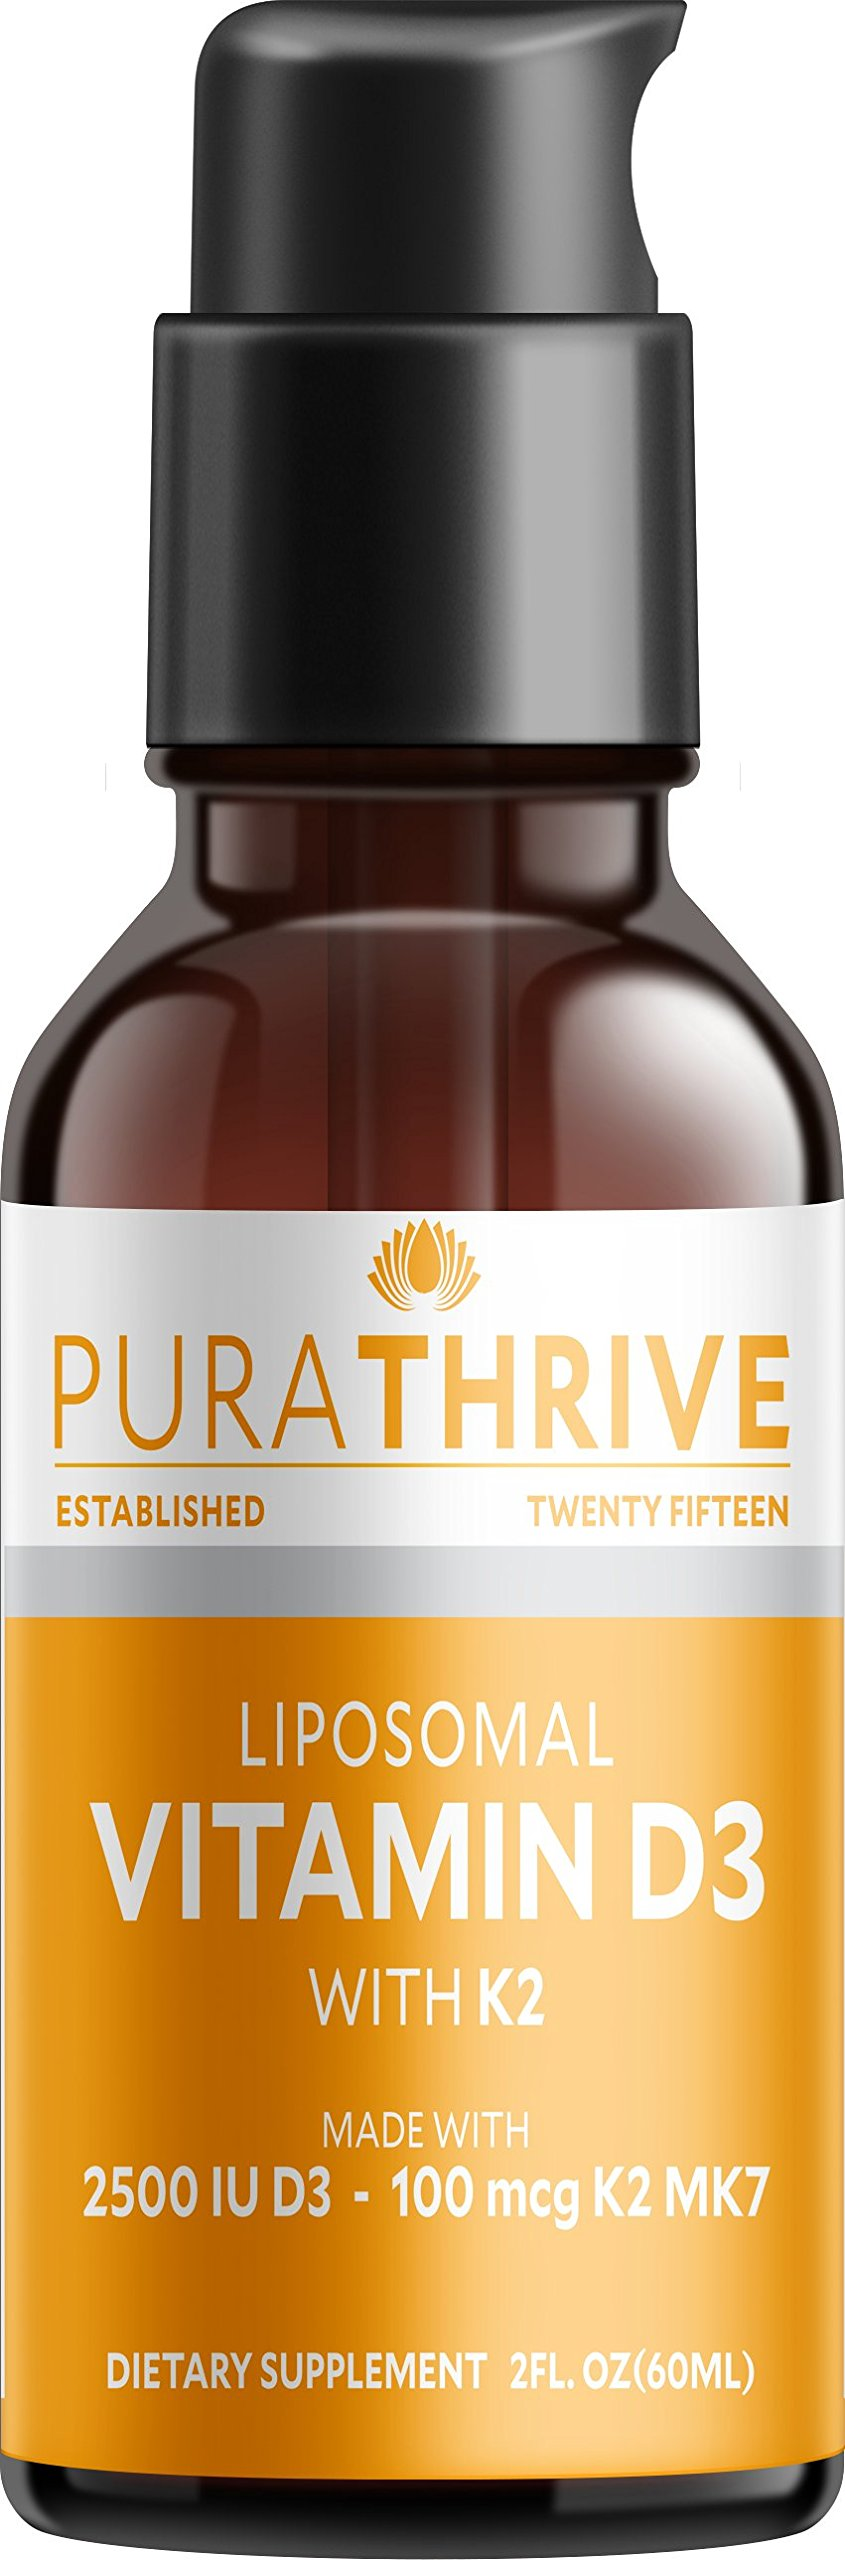 PuraTHRIVE Liquid Vitamin D3 with K2. High Absorption with True Liposomal Delivery. 2oz. (60ml). GMO Free, Gluten Free, Made in USA. D3 Provides D3 2500iu with K2 100 mcg MK-7.